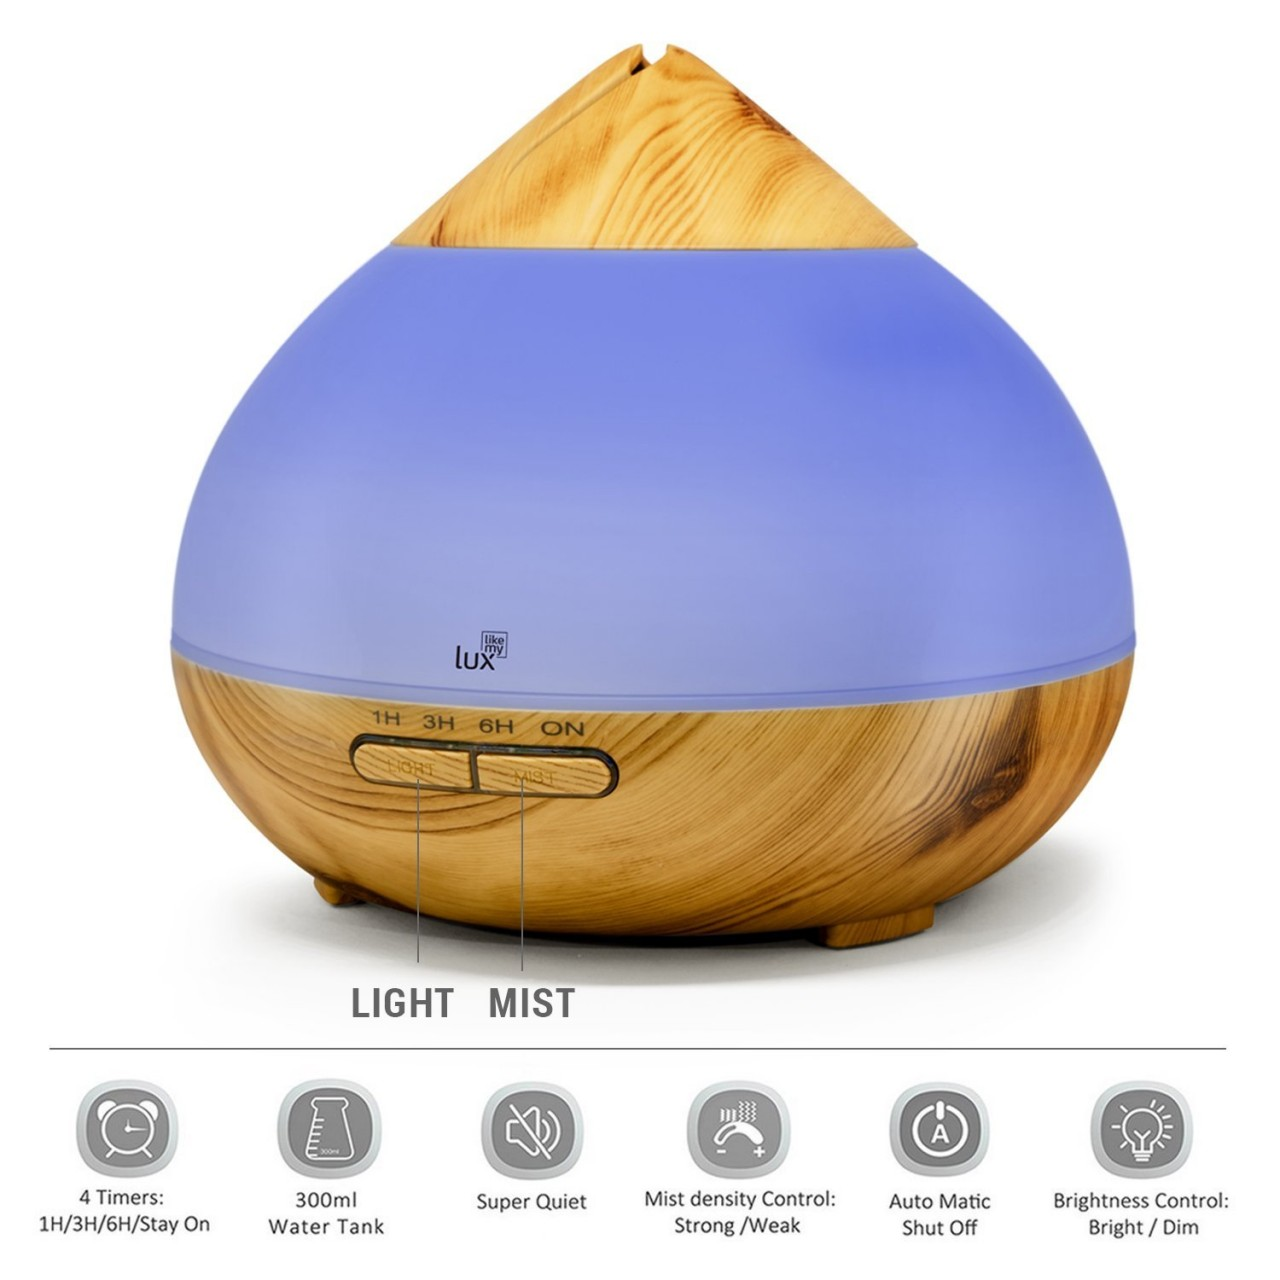 Aroma Diffuser Likemylux 300ml Luftbefeuchter Ultraschall Öl Diffusor LED